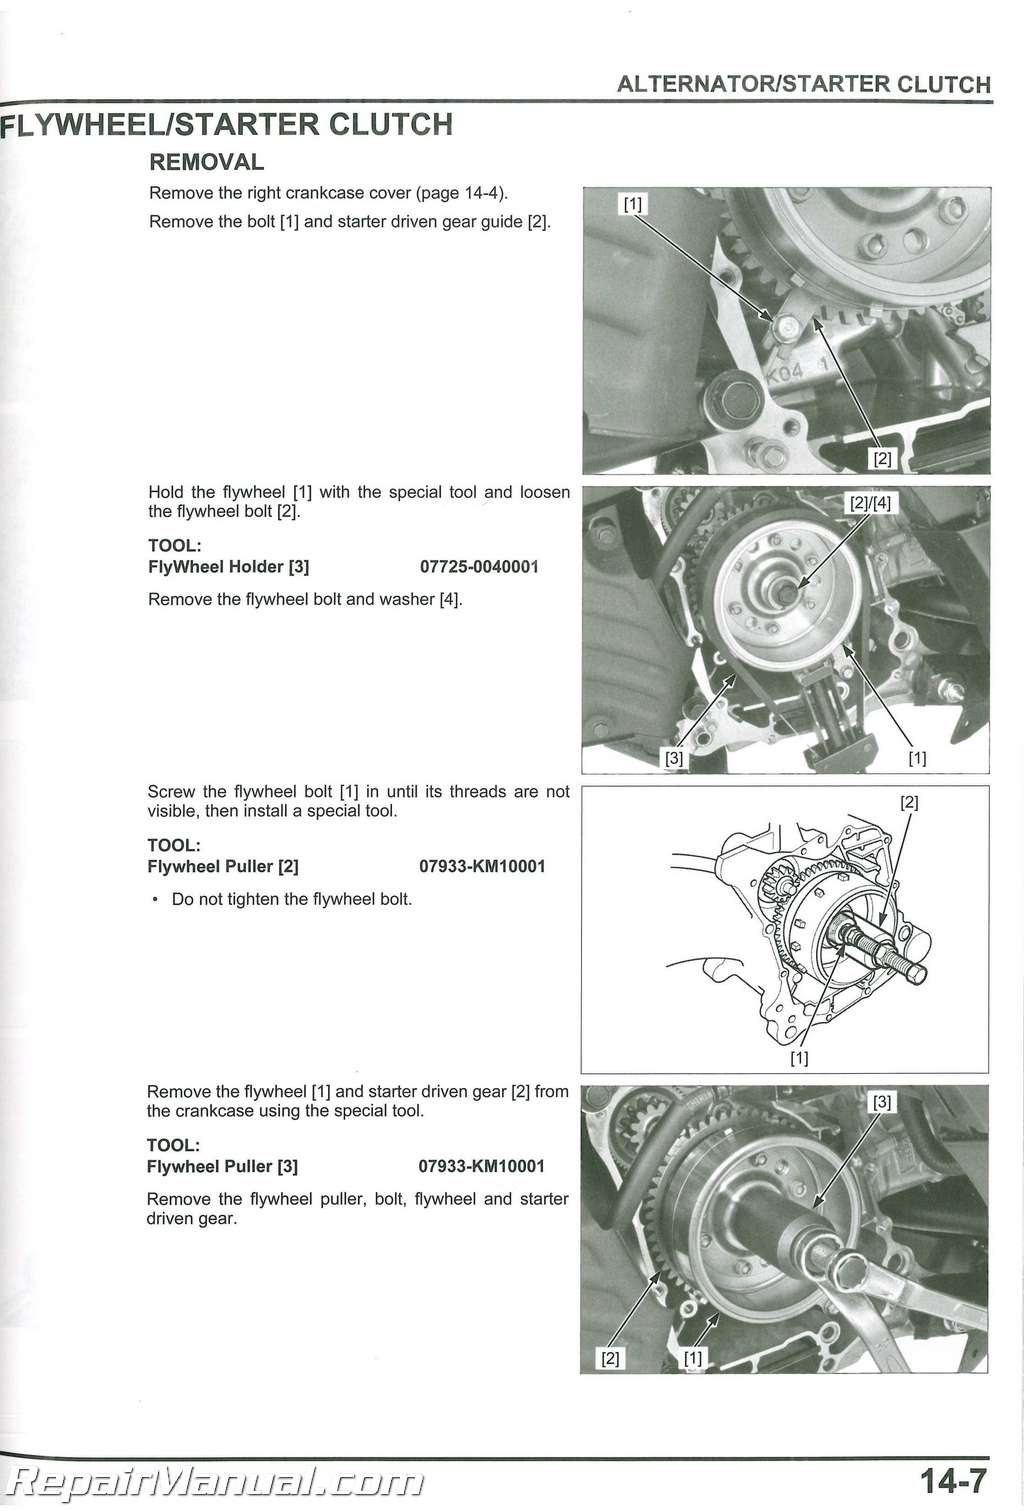 Honda Nss300 A Forza Scooter Service Manual